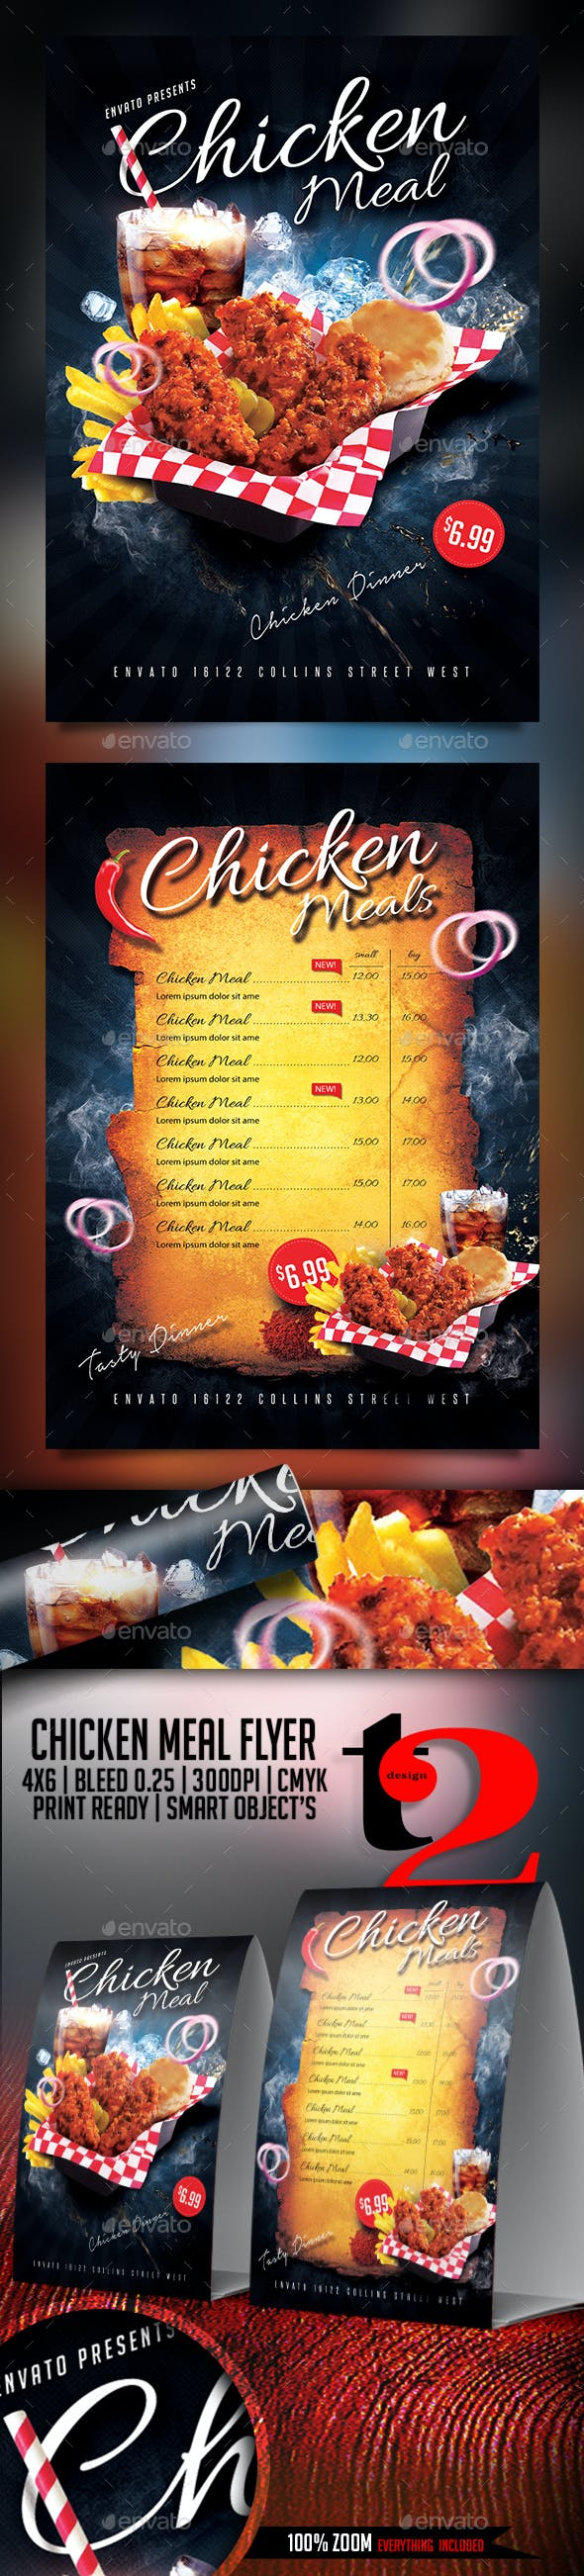 chicken meal flyer template by take2design graphicriver